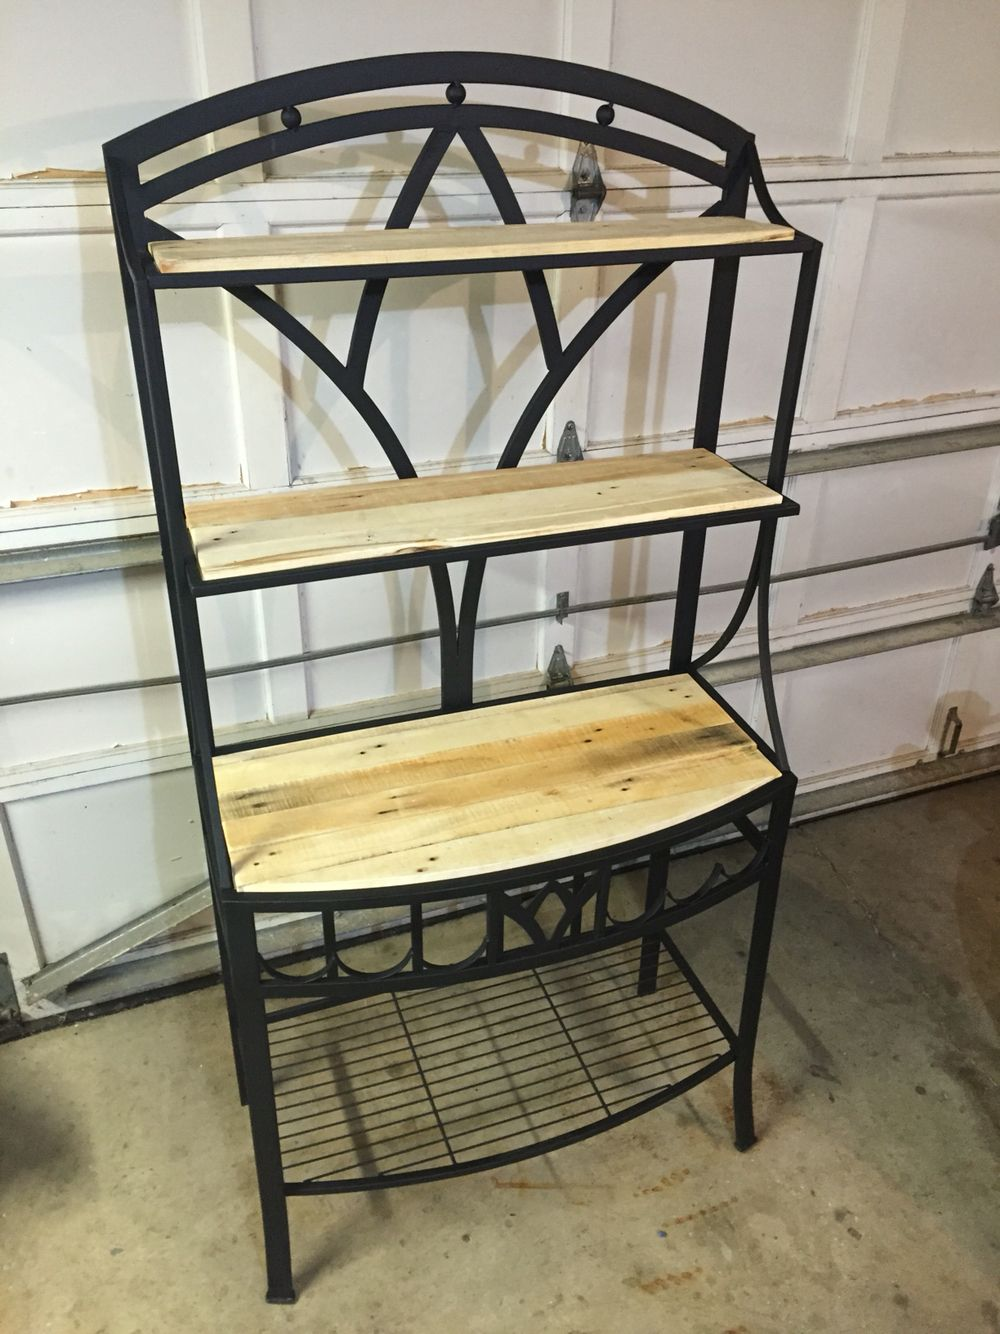 Upcycled Bakers Rack I Turned The Broken Glass Shelves Into Some